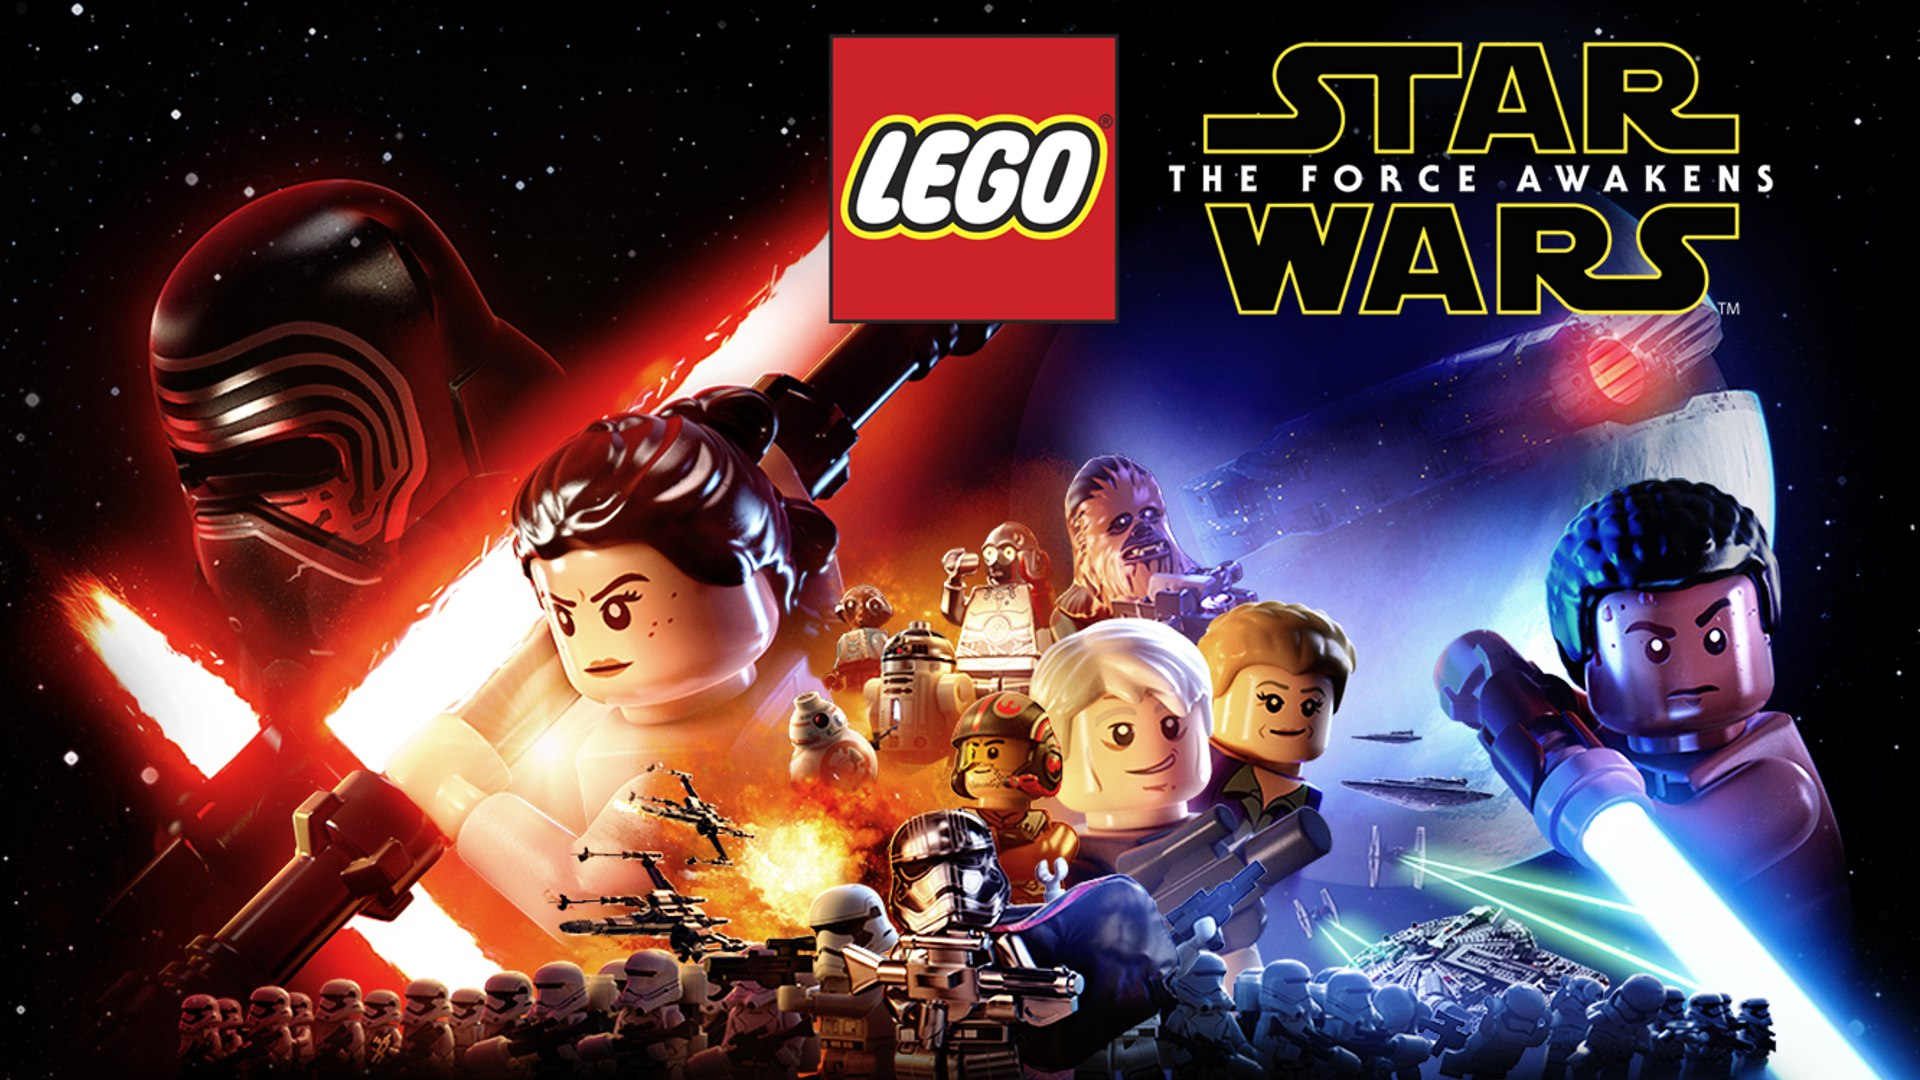 Let's Play LEGO Star Wars: The Force Awakens | LEGO Star Wars Gameplay DEMO (Xbox One Gameplay)